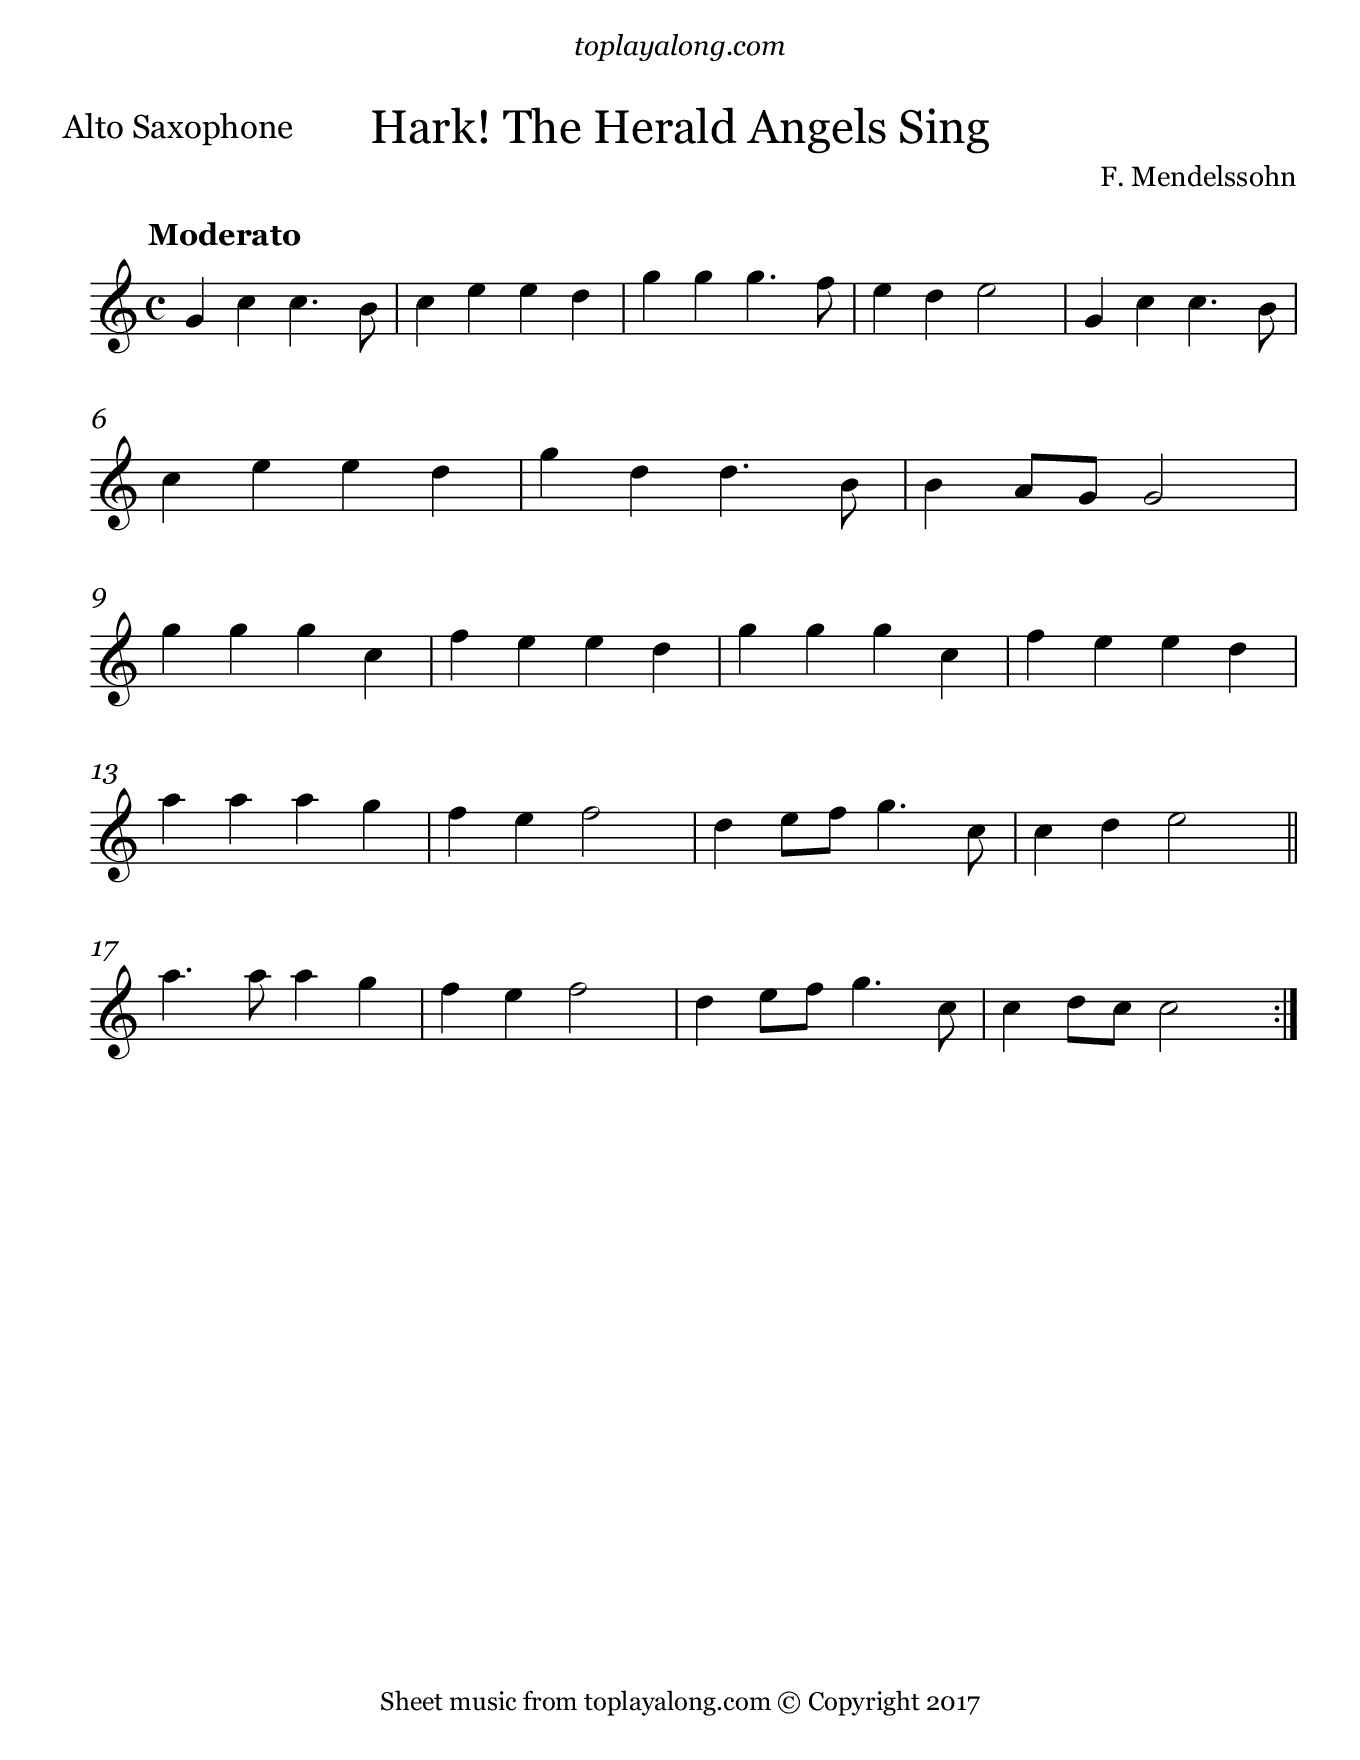 Hark! The Herald Angels Sing by Mendelssohn. Sheet music for Alto Sax, page 1.